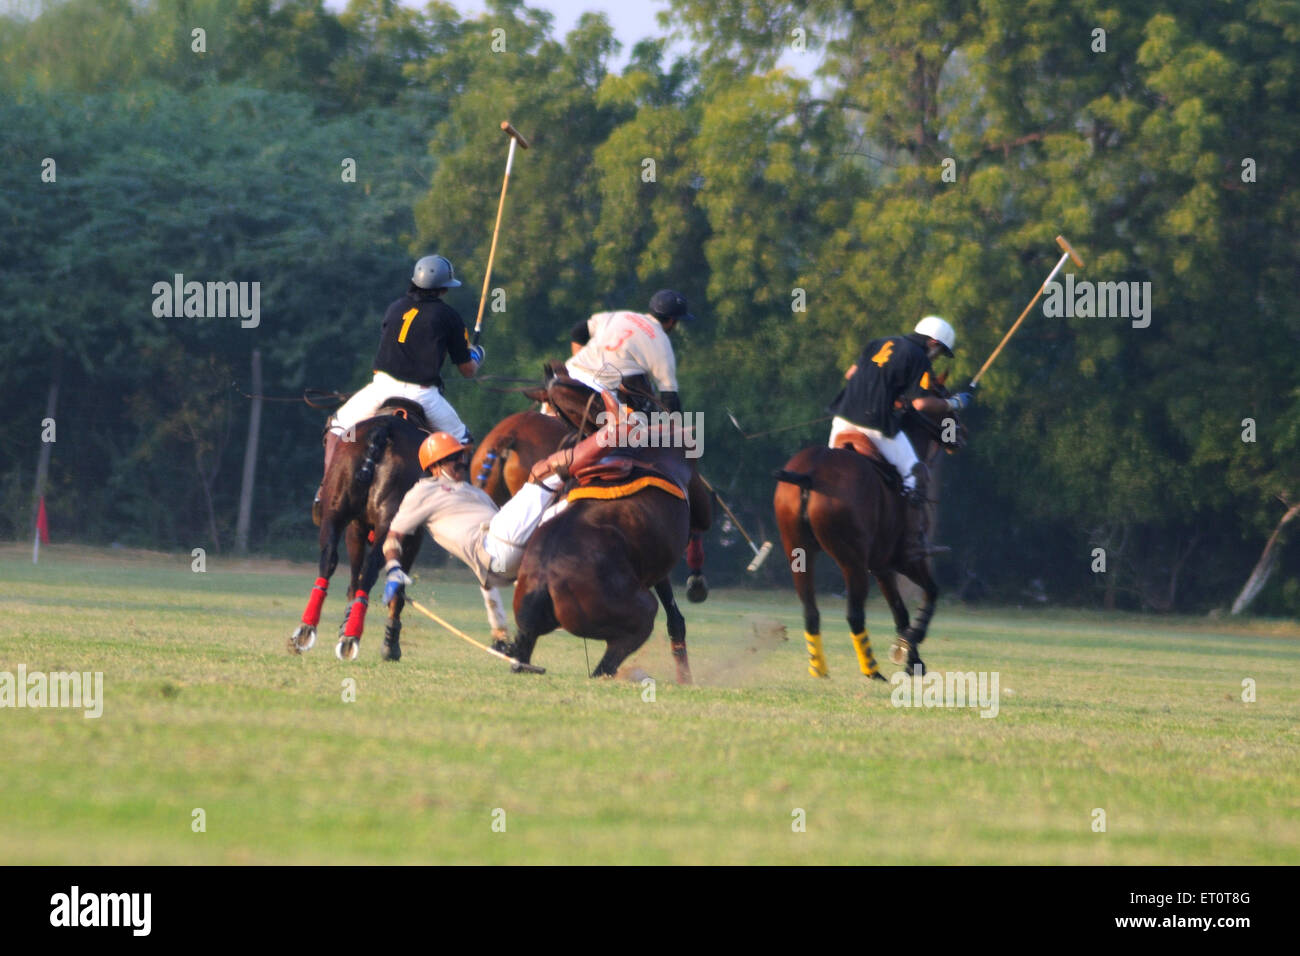 Polo match ; Jodhpur ; Rajasthan ; India - Stock Image